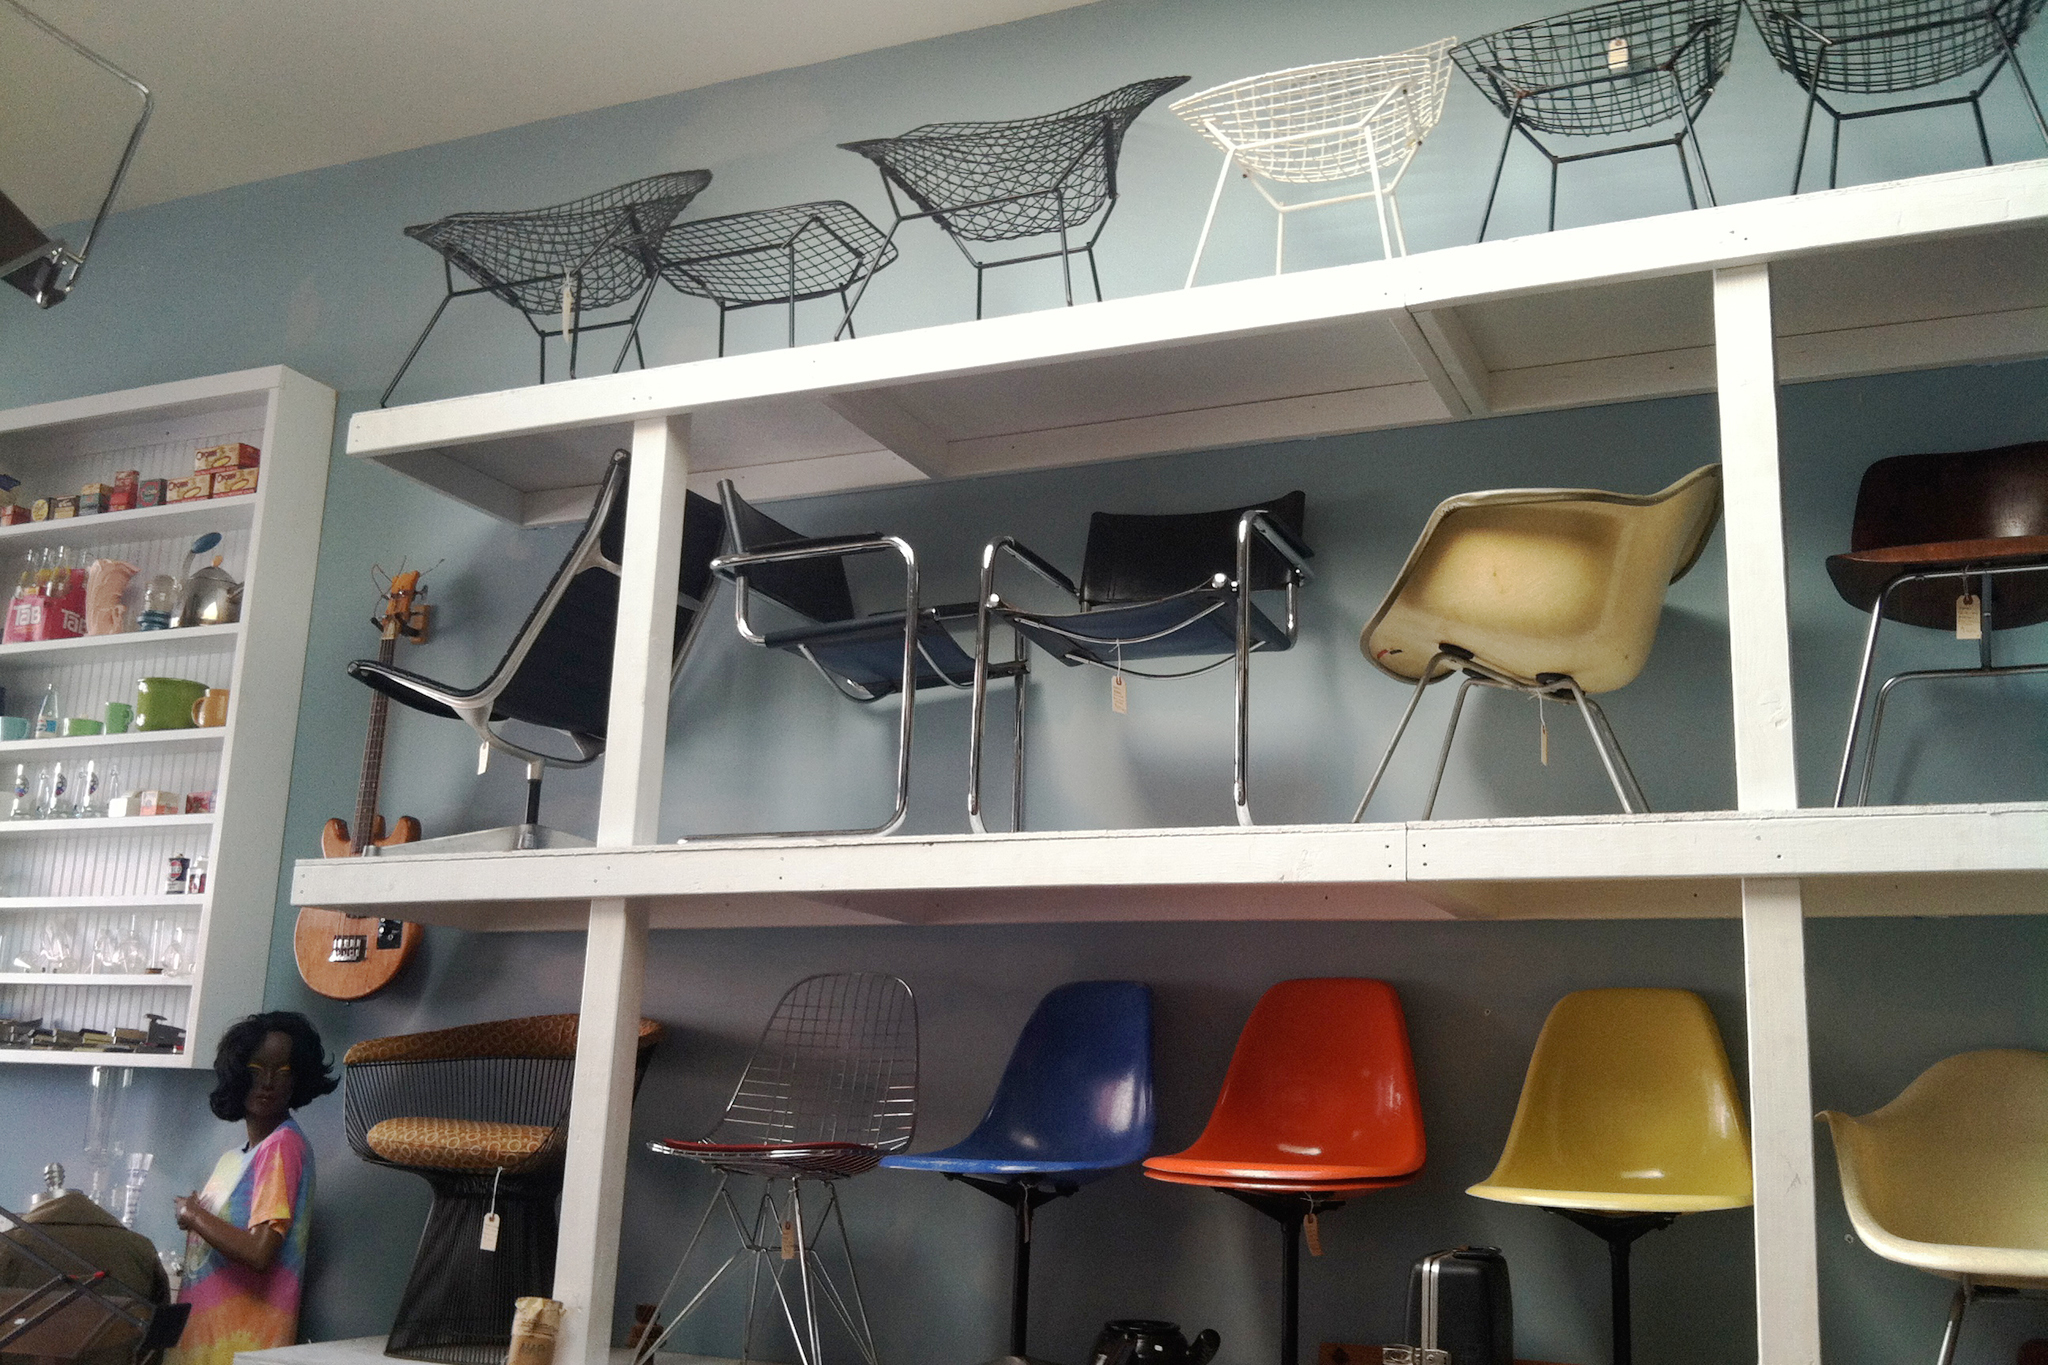 The best vintage clothing and furniture stores in San Francisco